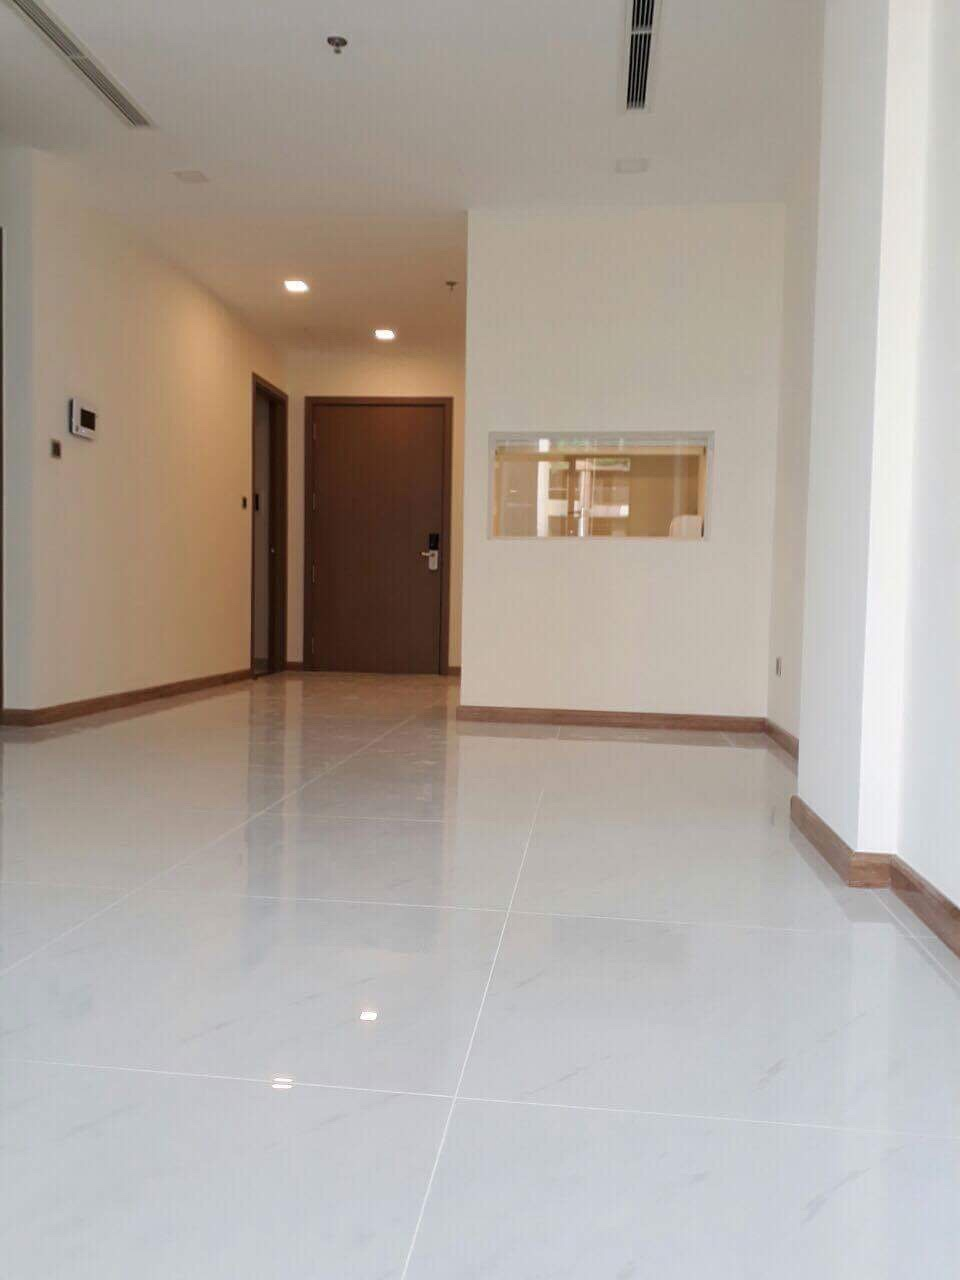 4 bedroom apartments for rent vinhomes central park with 2 bedrooms apartment for rent 17999